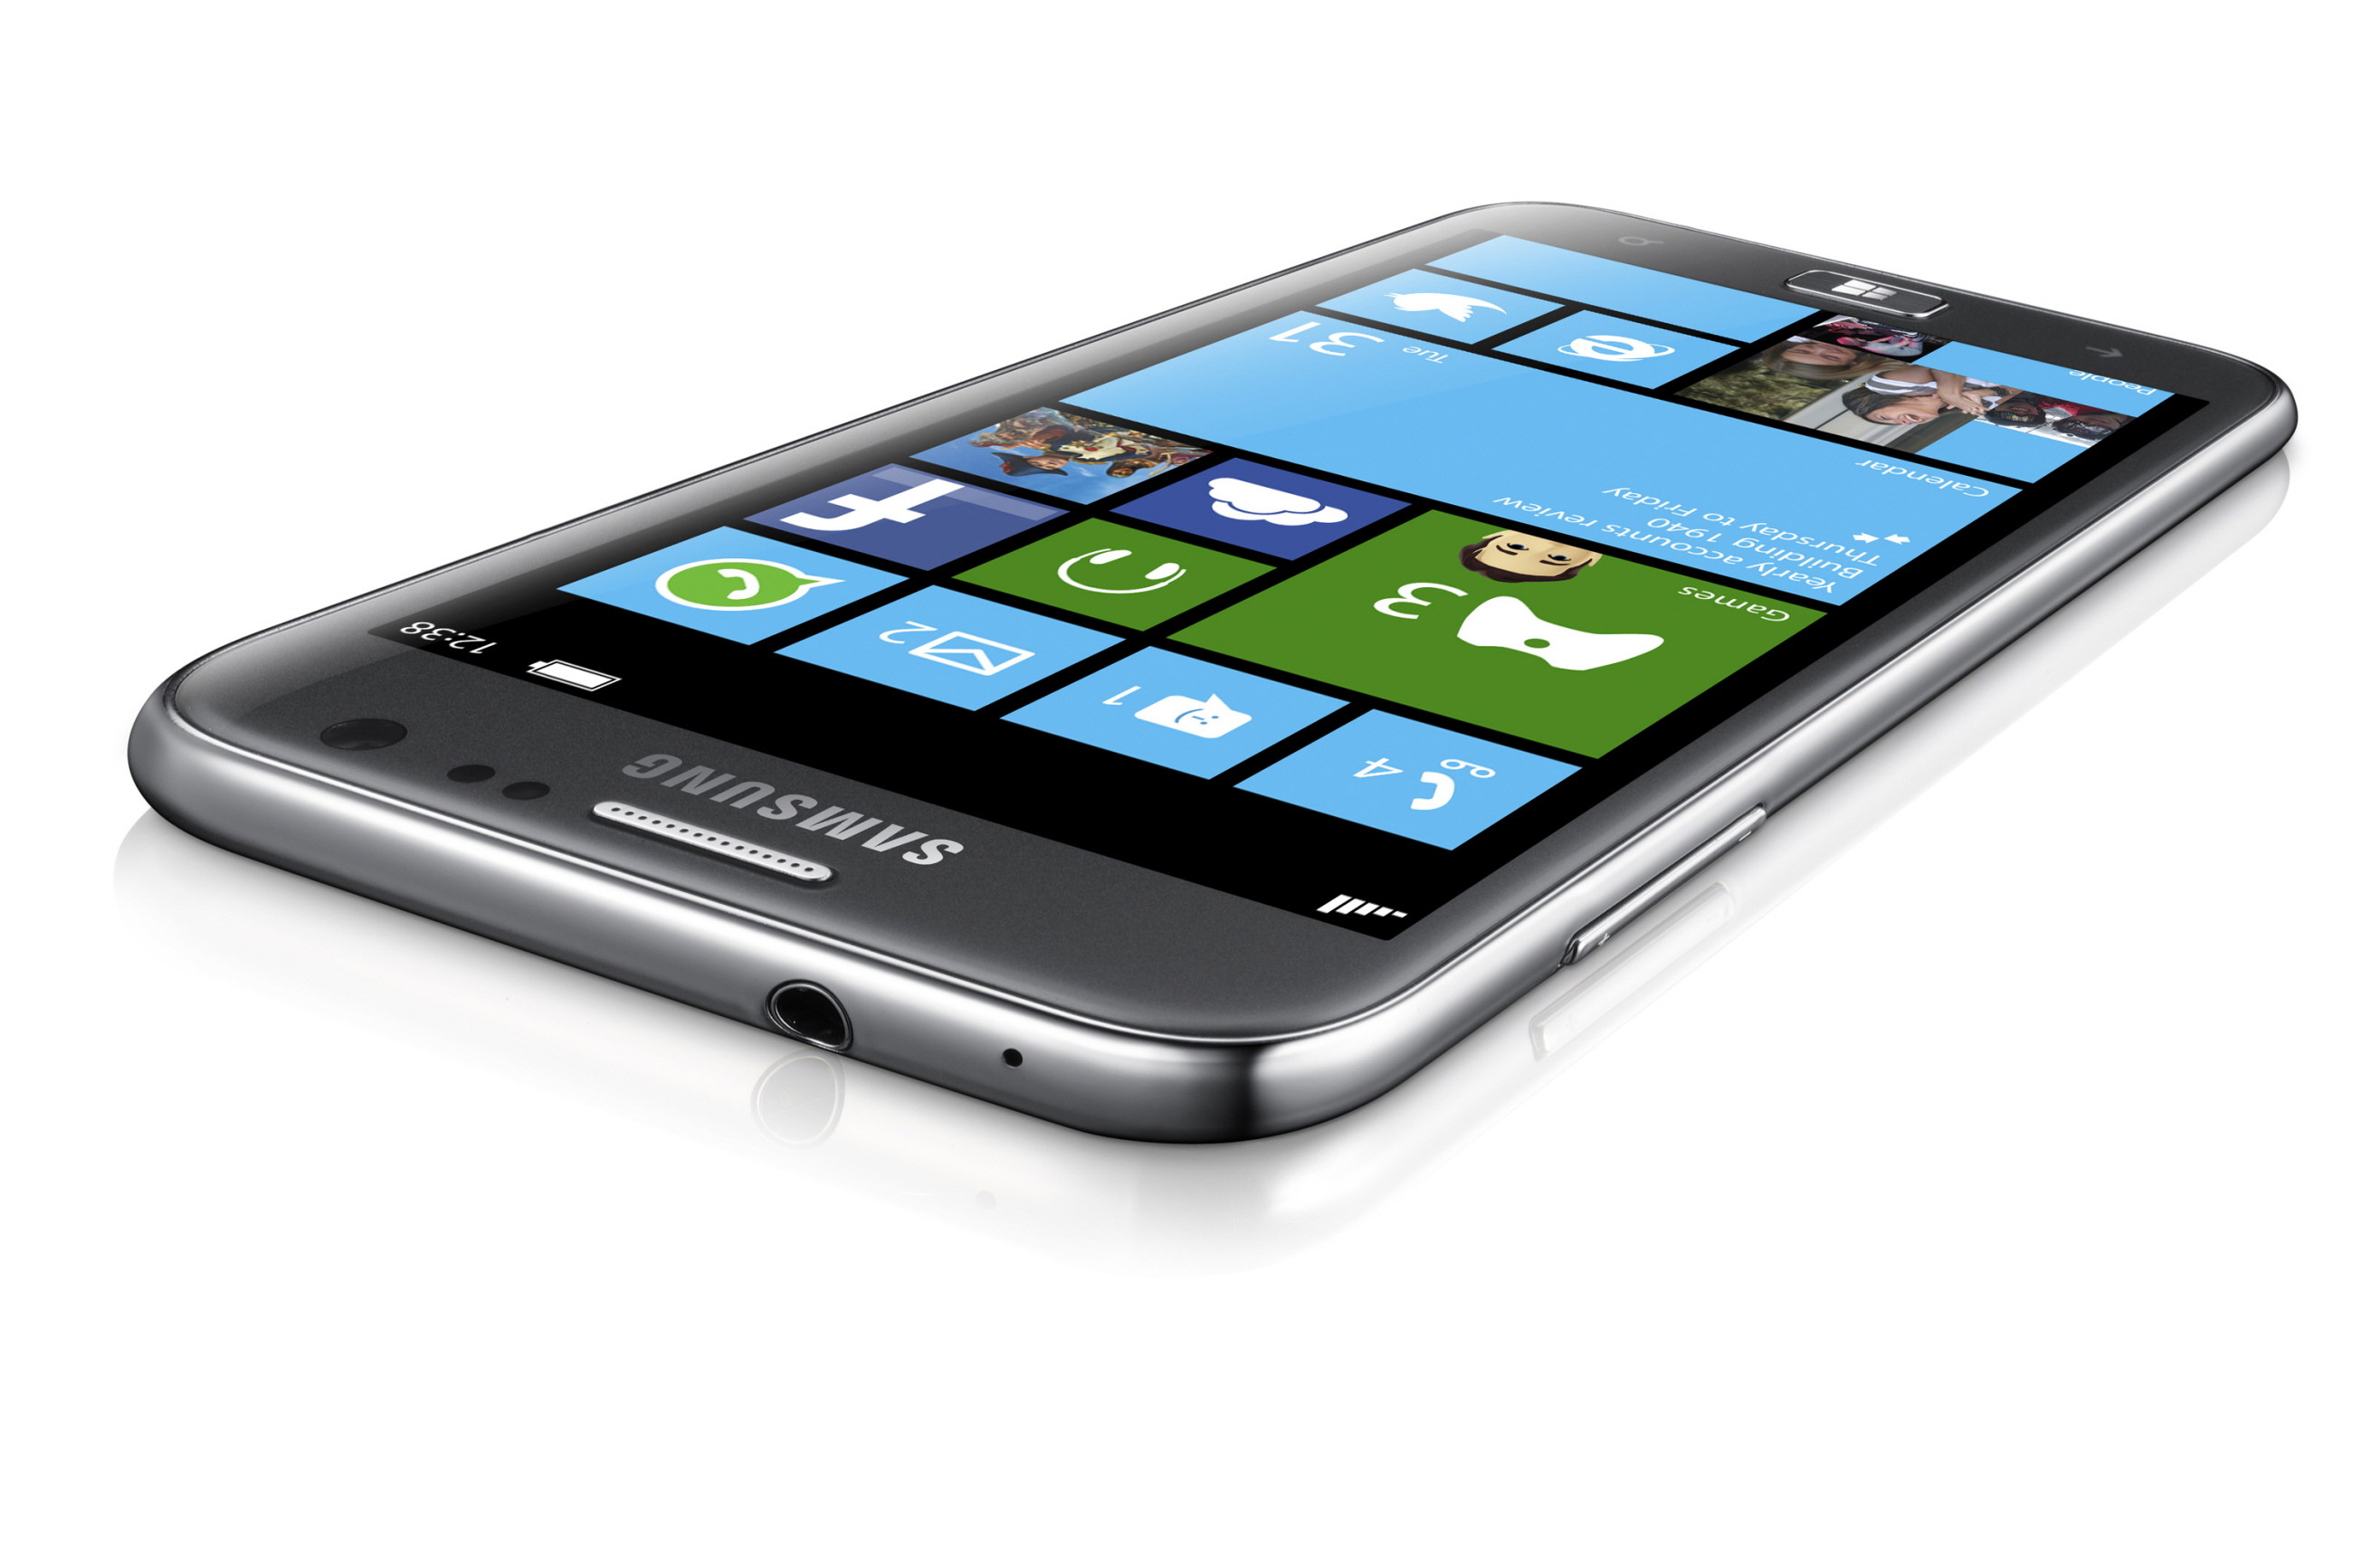 Samsung Ativ S - pierwszy smartphone z Windows Phone 8